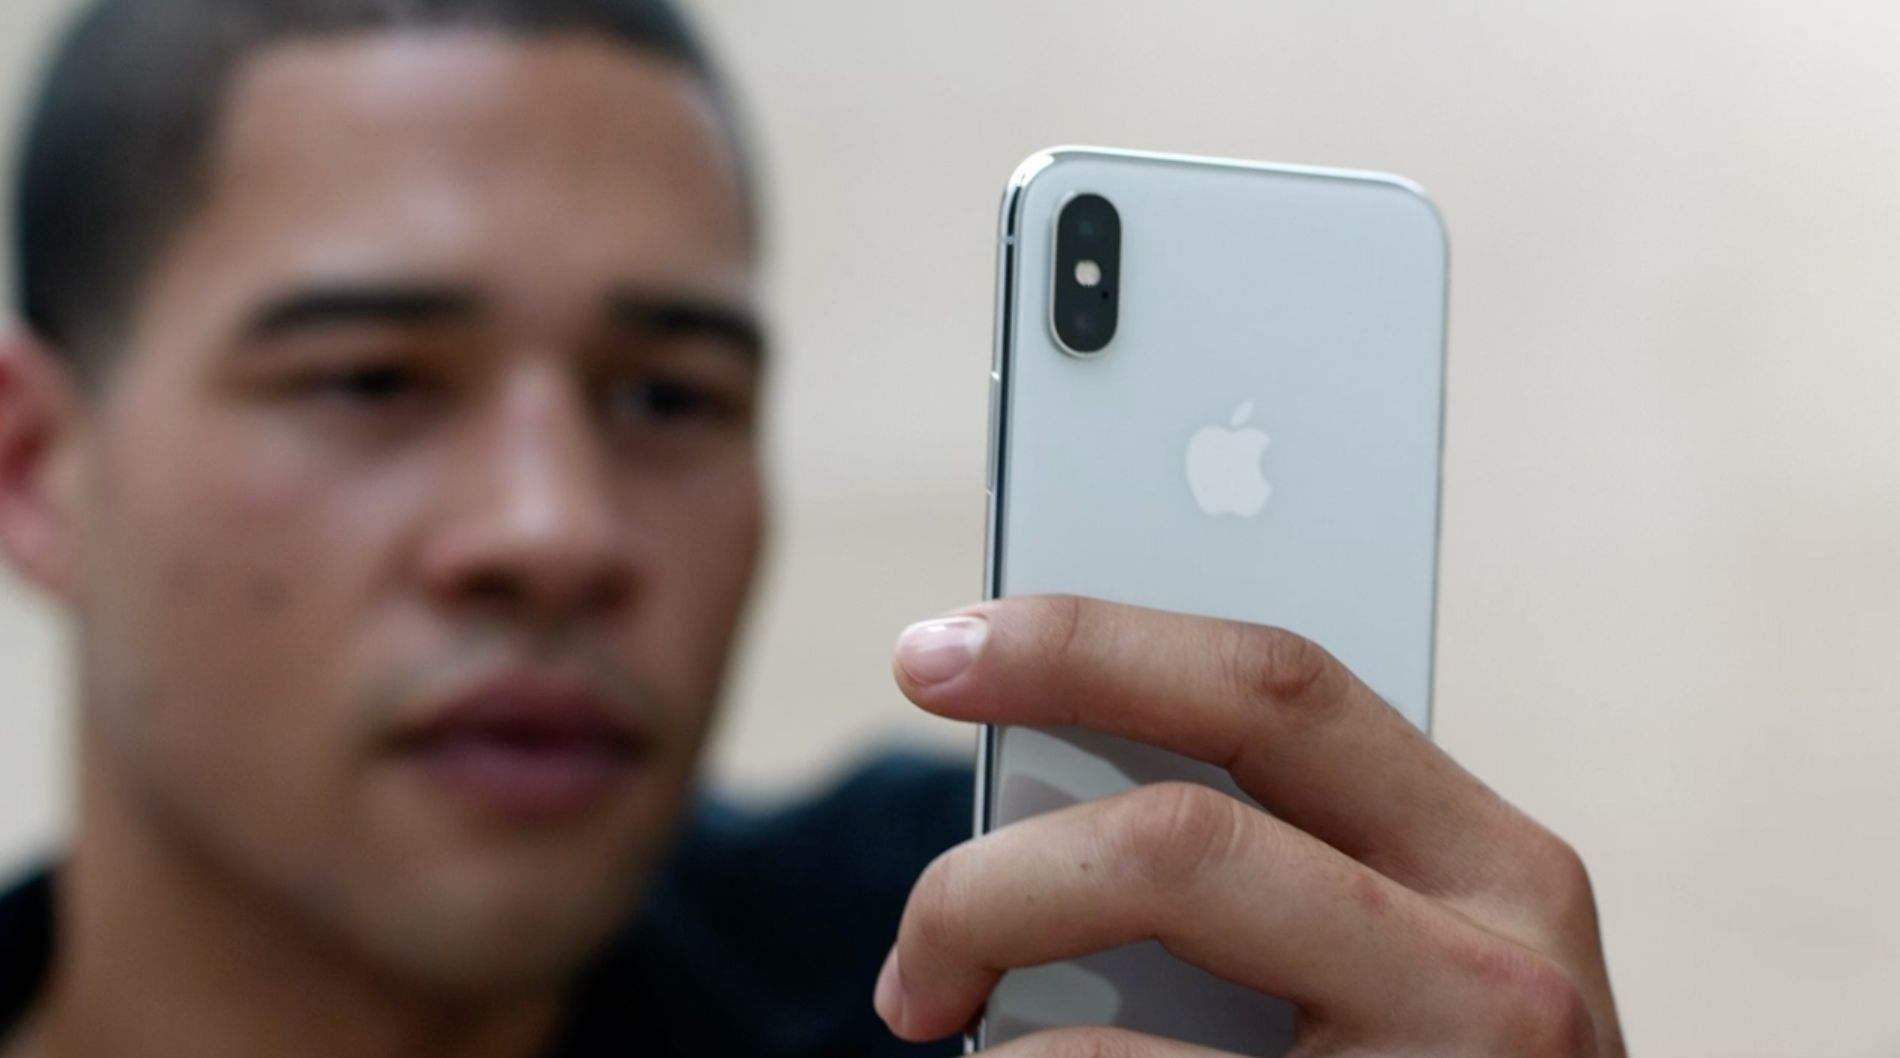 Apple's Face-Scanning Technology Is Great Unless You Have An Evil